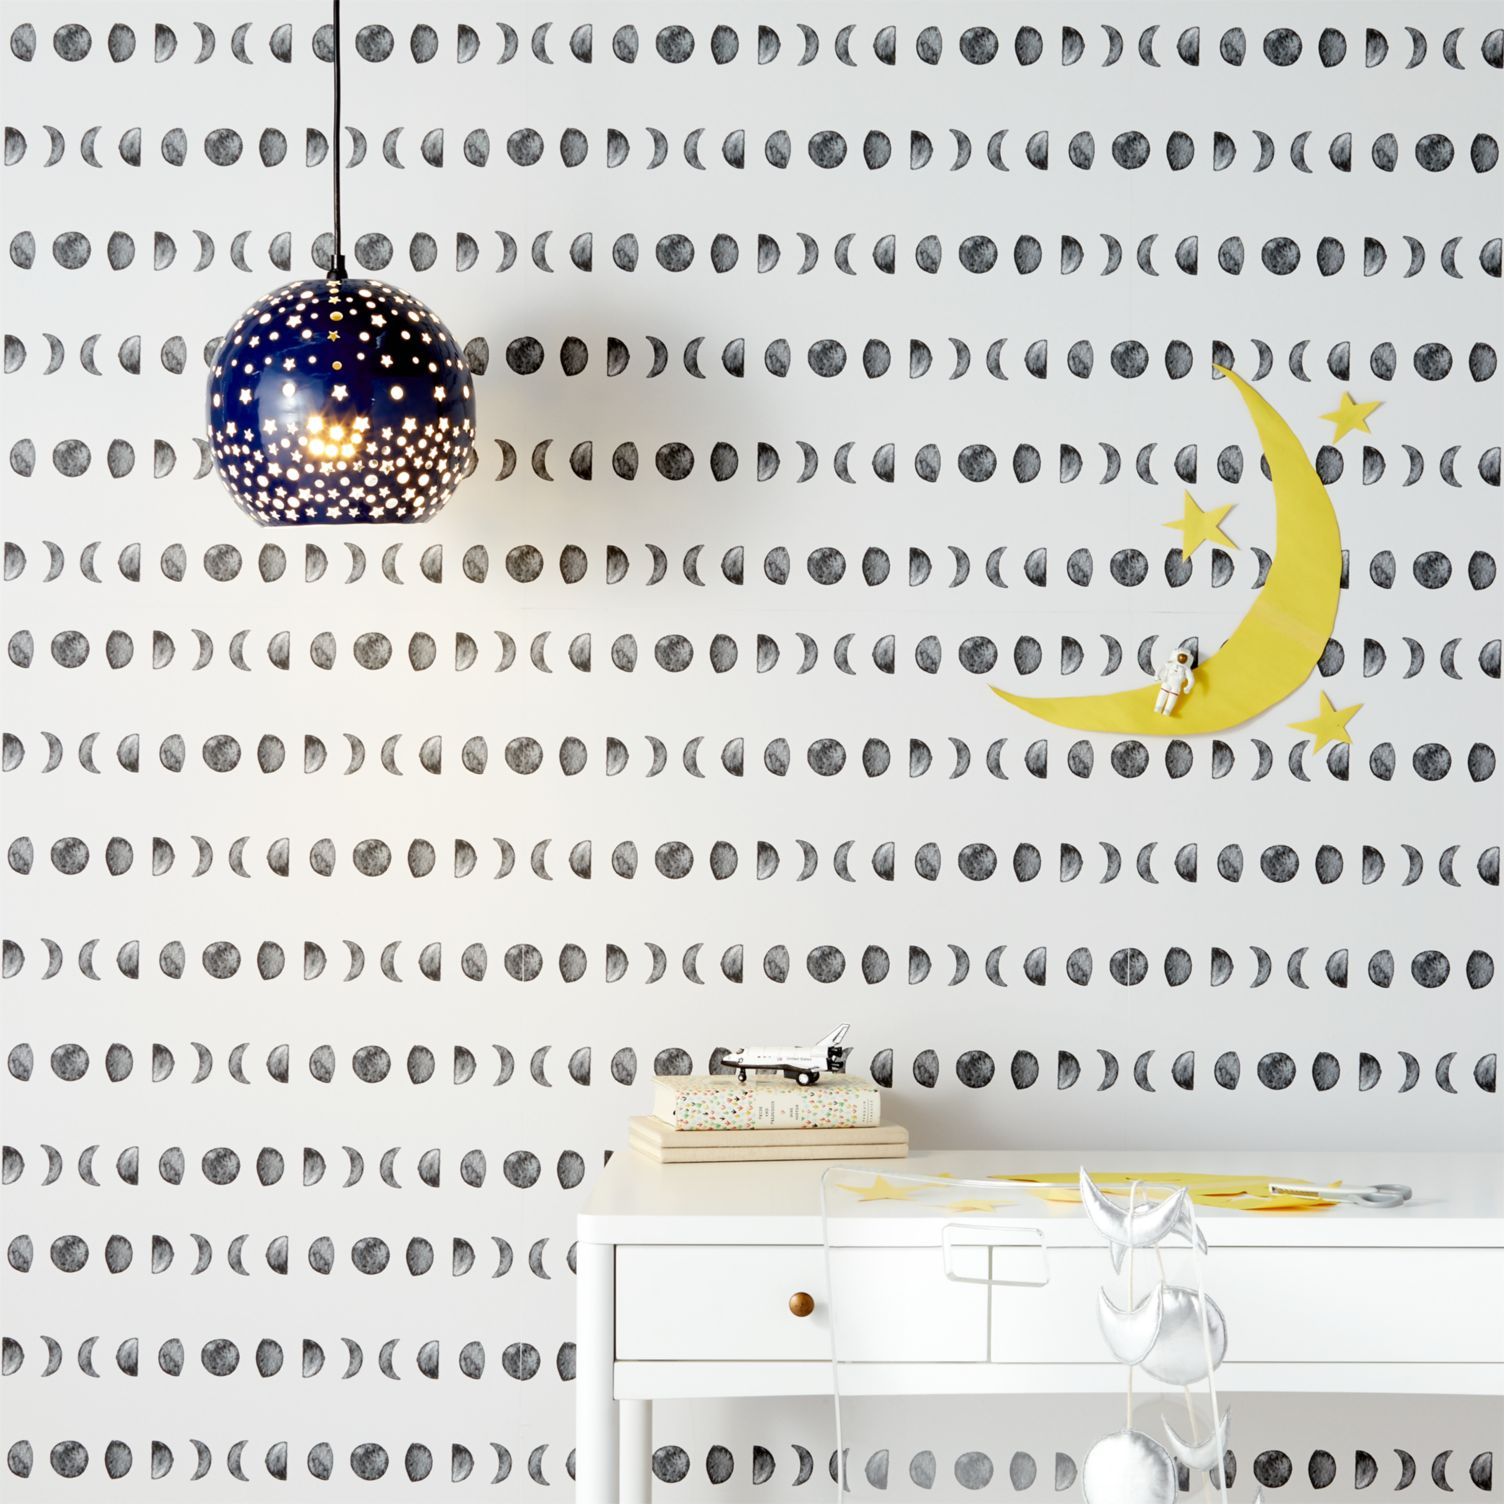 Moon removable wallpaper from Crate & Barrel